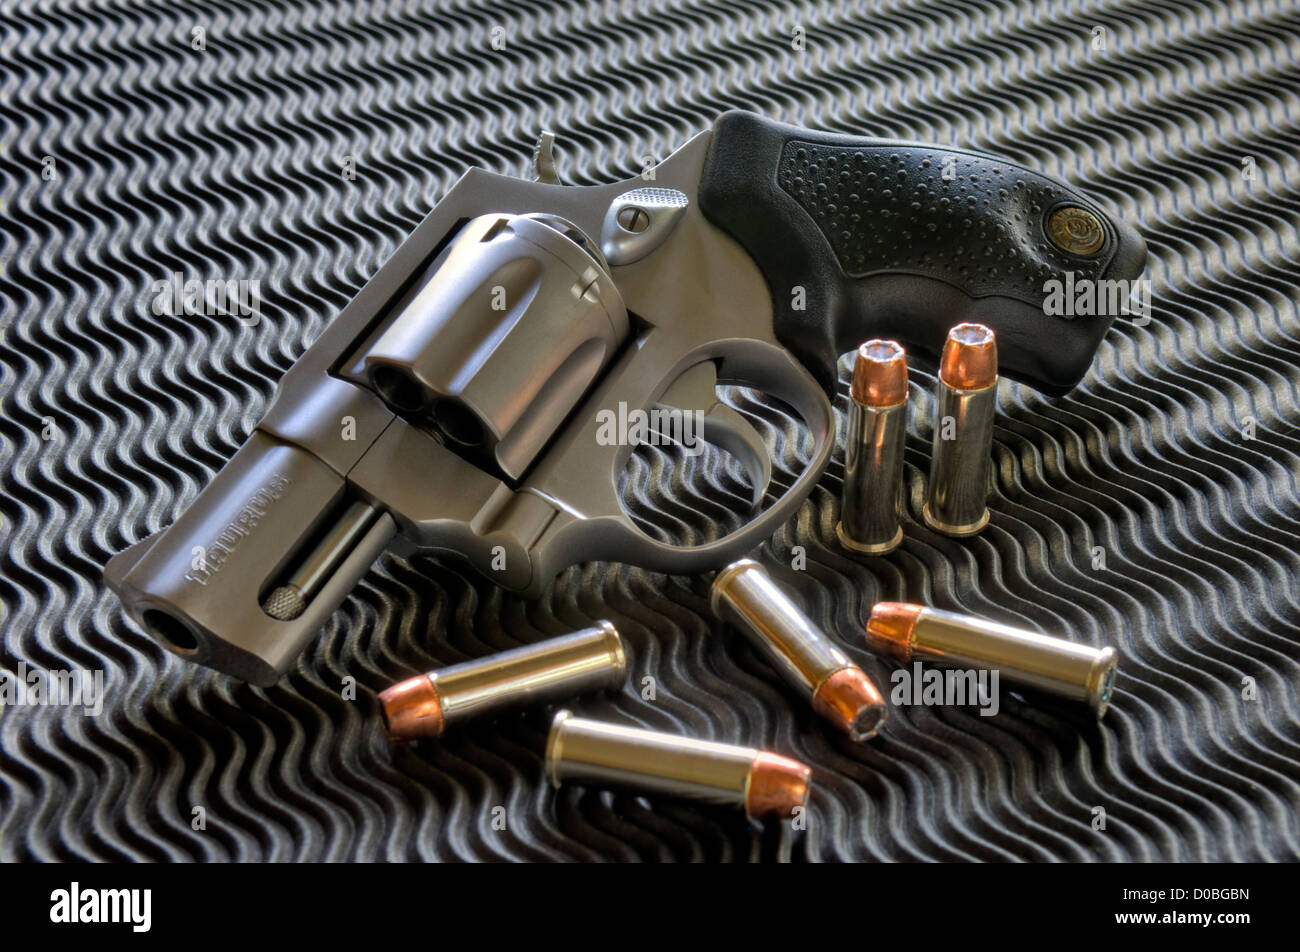 Taurus Model 856 Snub Nose 38 Special Revolver Stock Photo: 51885449